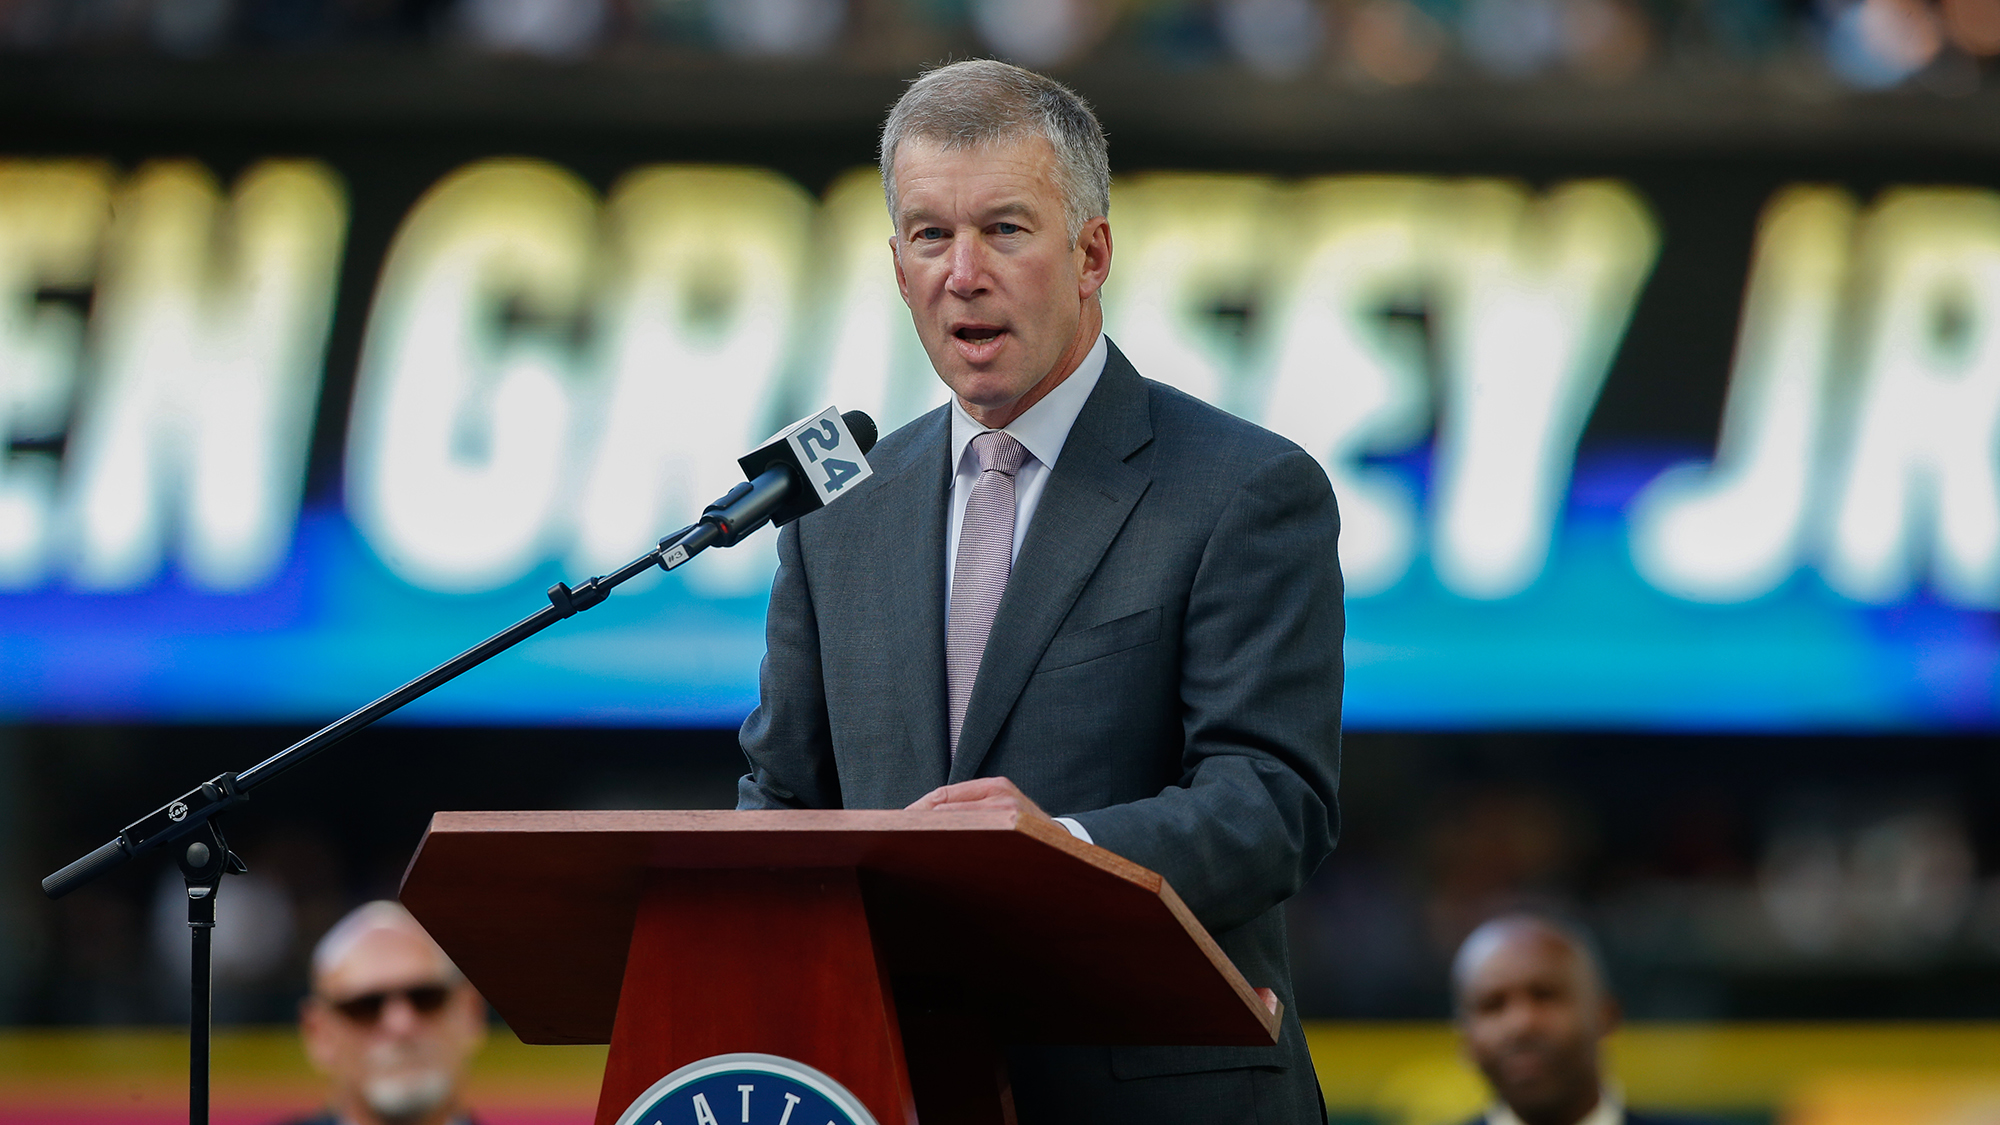 Seattle Mariners president steps down after comments surface in which he disparaged baseball players